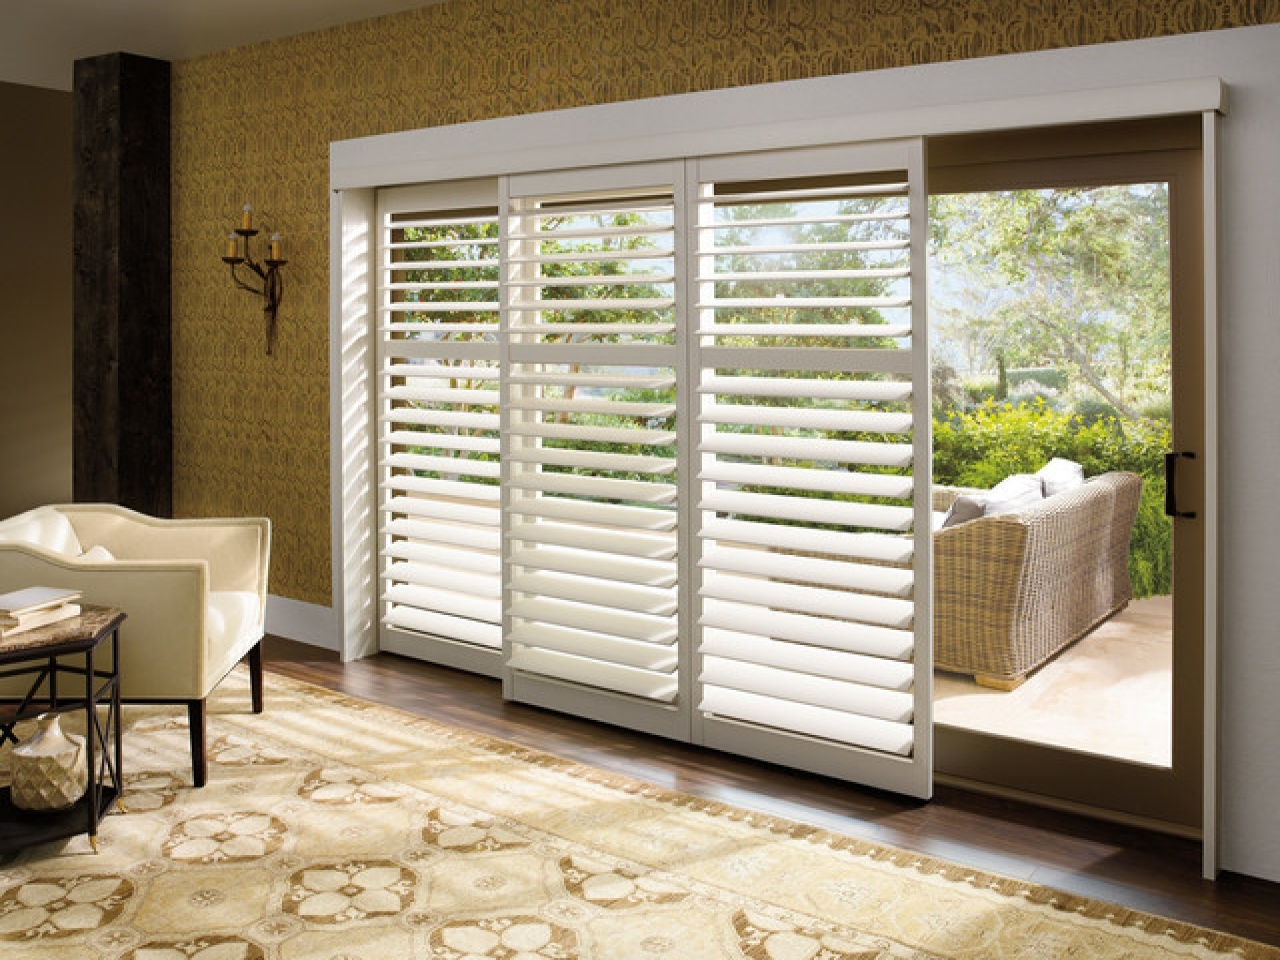 Window Covers For Sliding Glass Doors